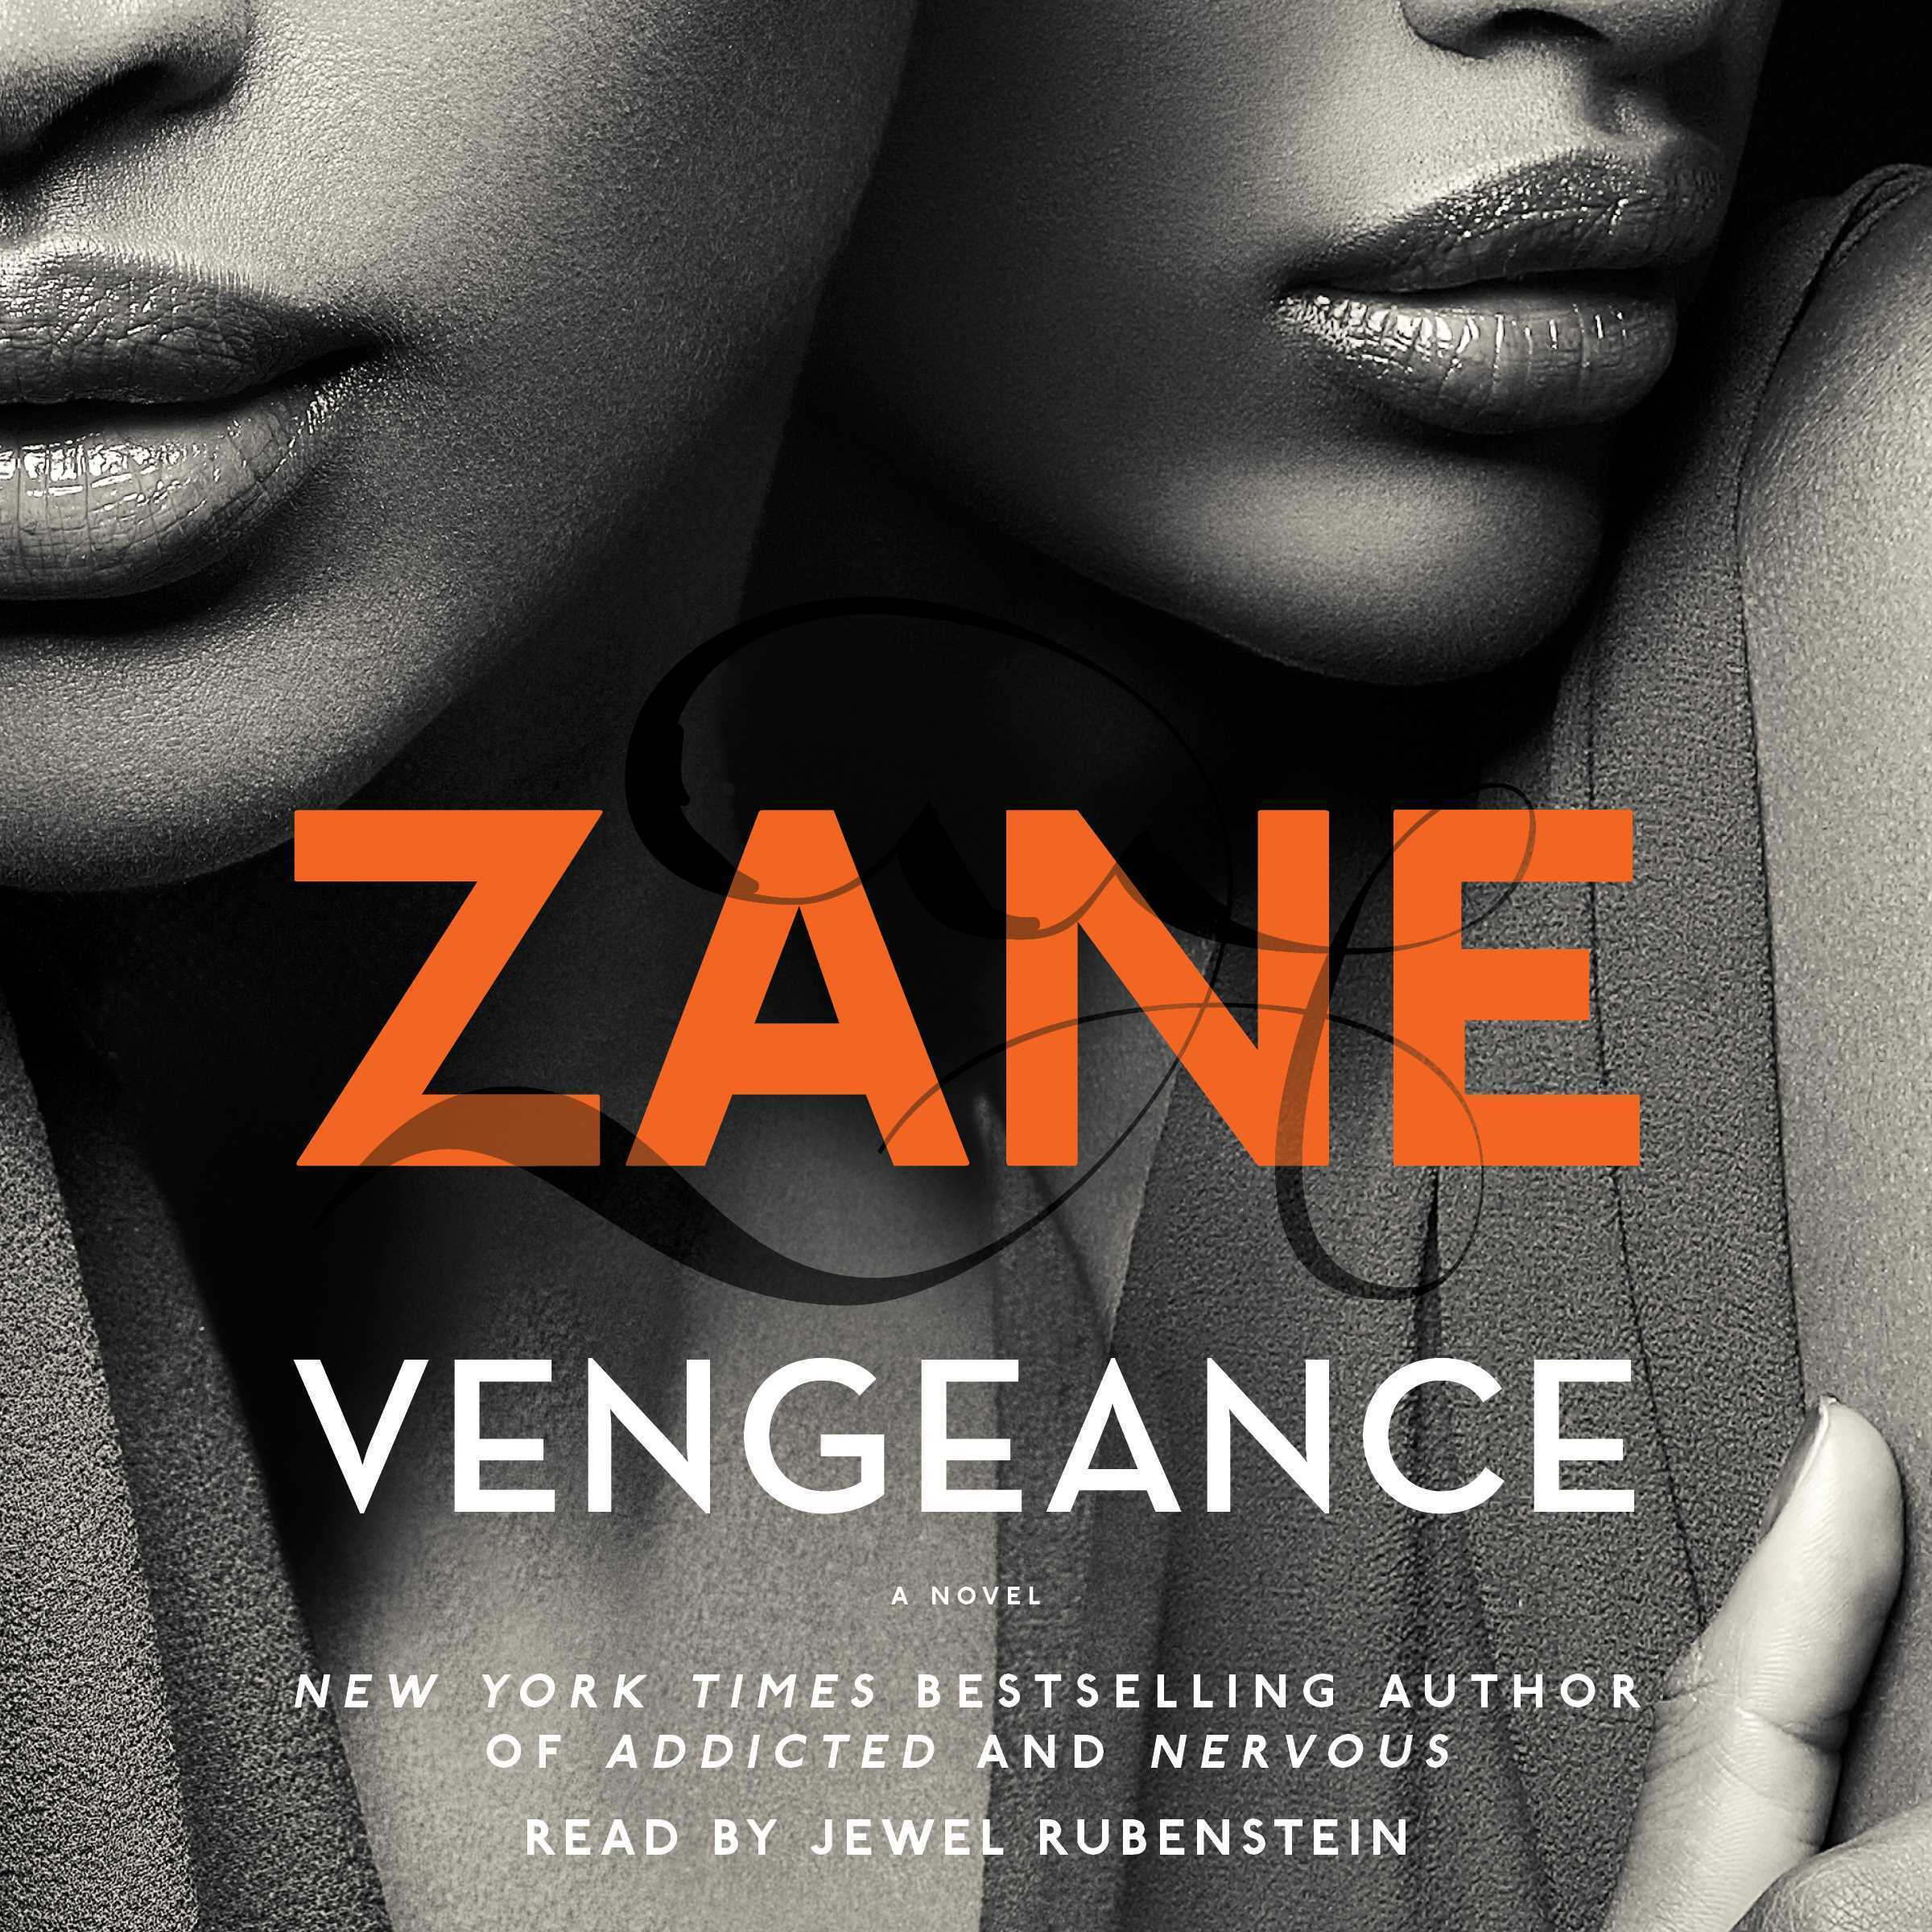 Printable Zane's Vengeance Audiobook Cover Art